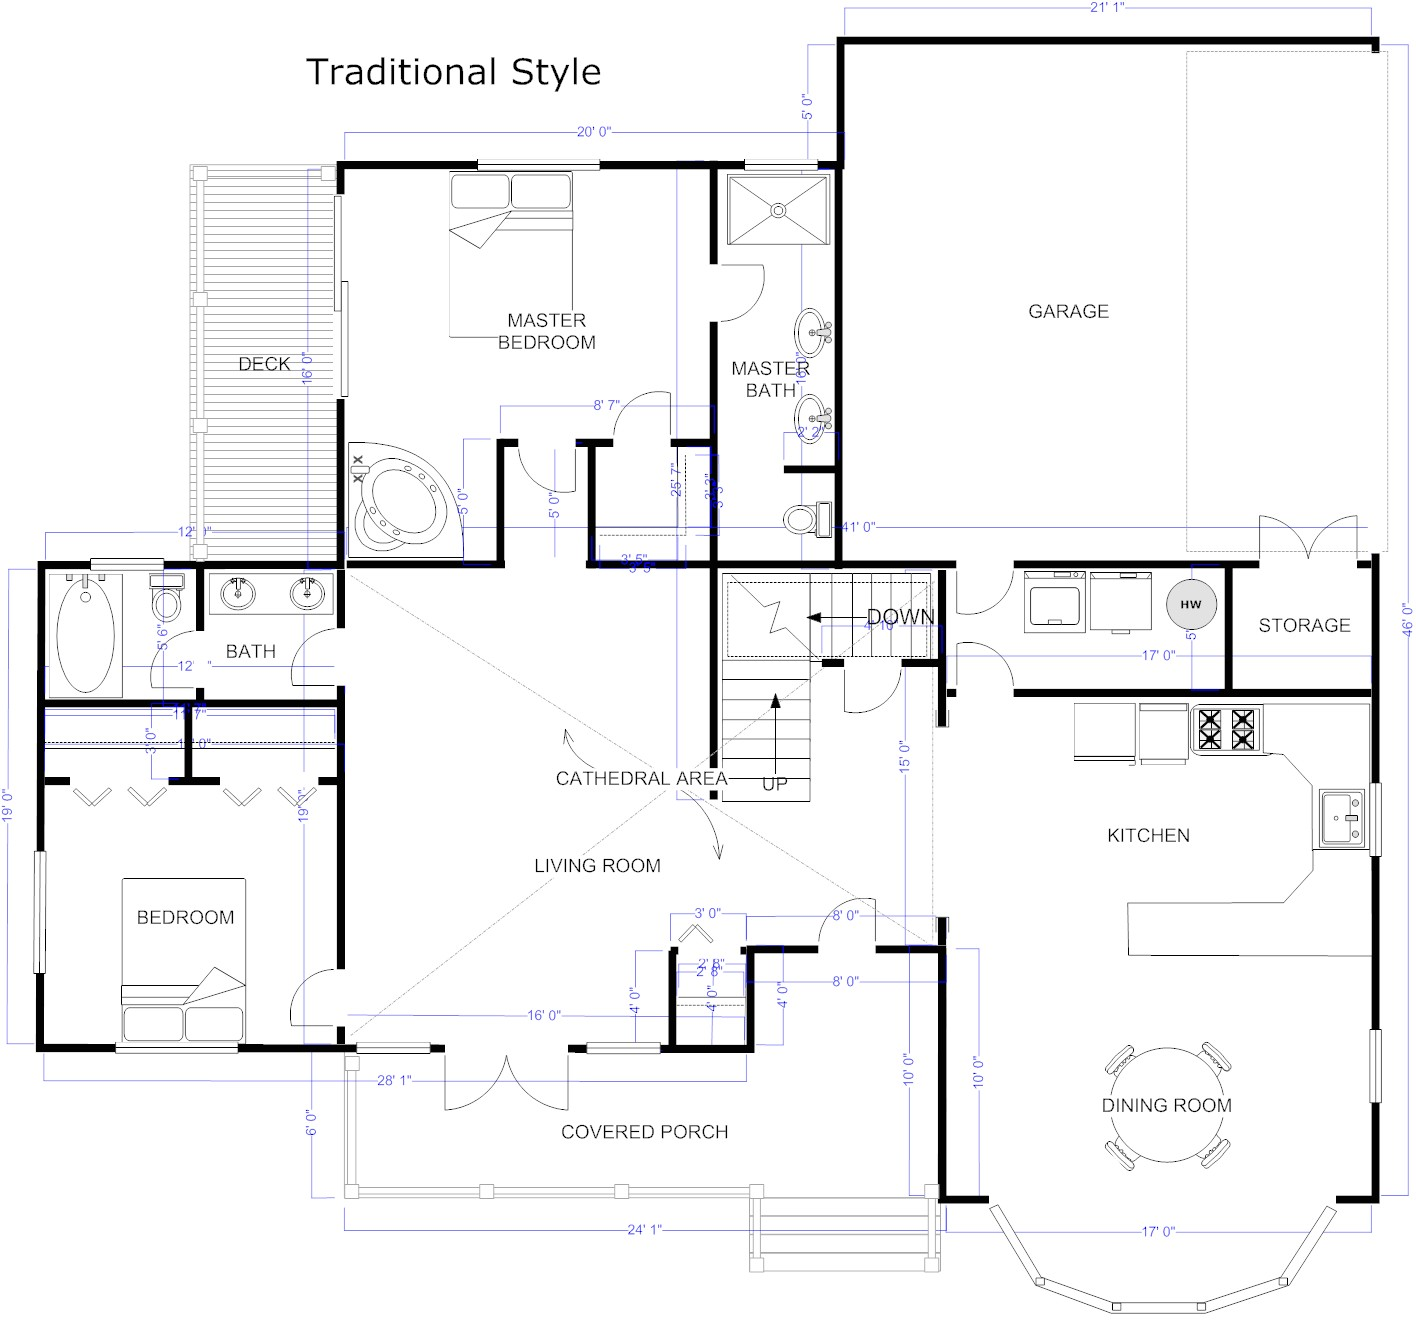 Home Design Plans Online Home Floor Plan software Free Download Beautiful